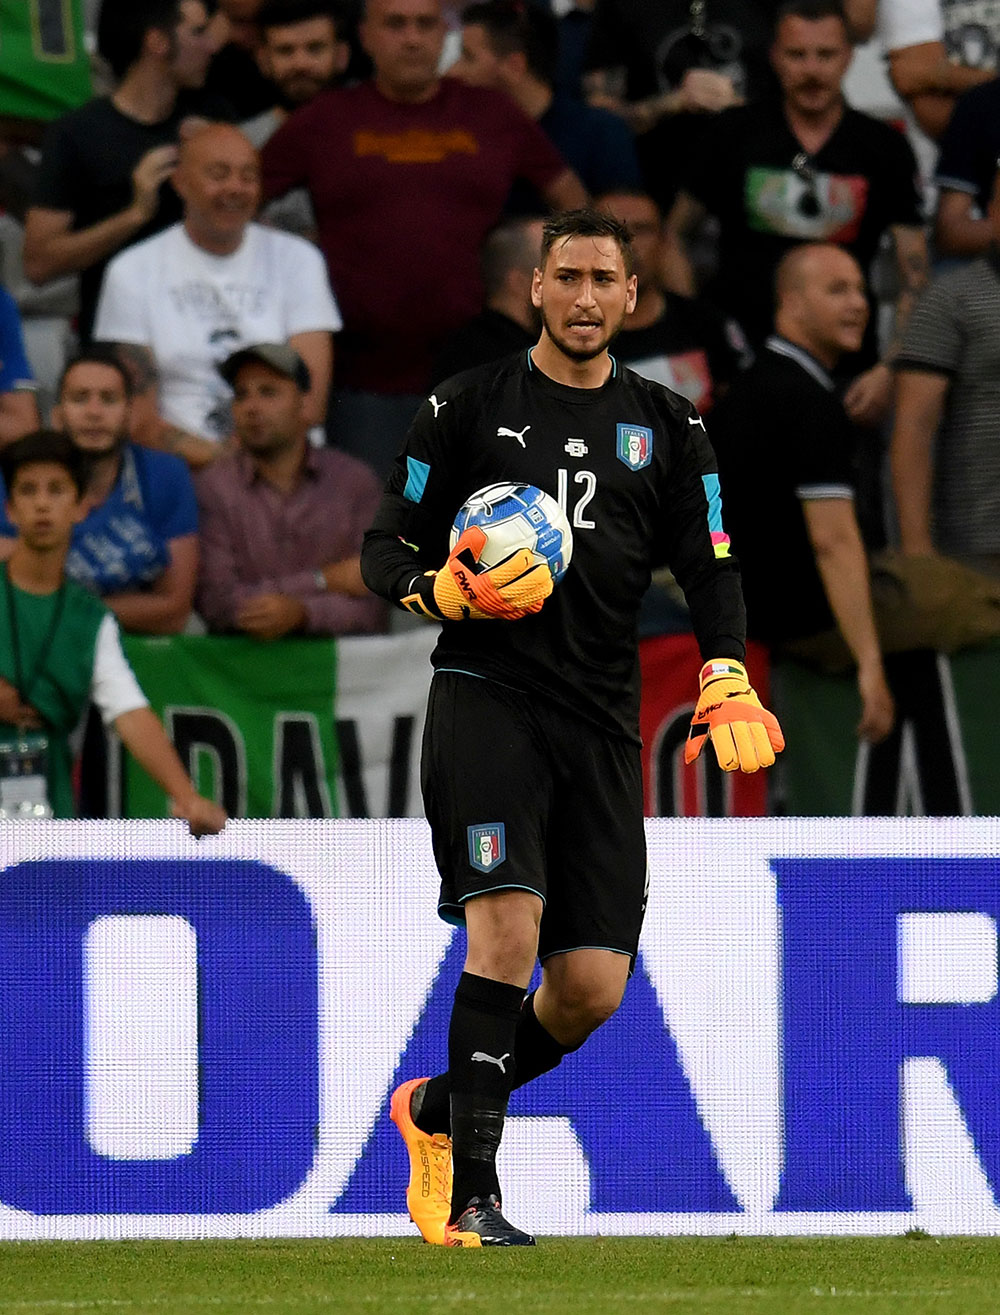 Gianluigi Donnarumma during Italy-Uruguay at Allianz Riviera Stadium on June 7, 2017. (Photo by Claudio Villa/Getty Images)